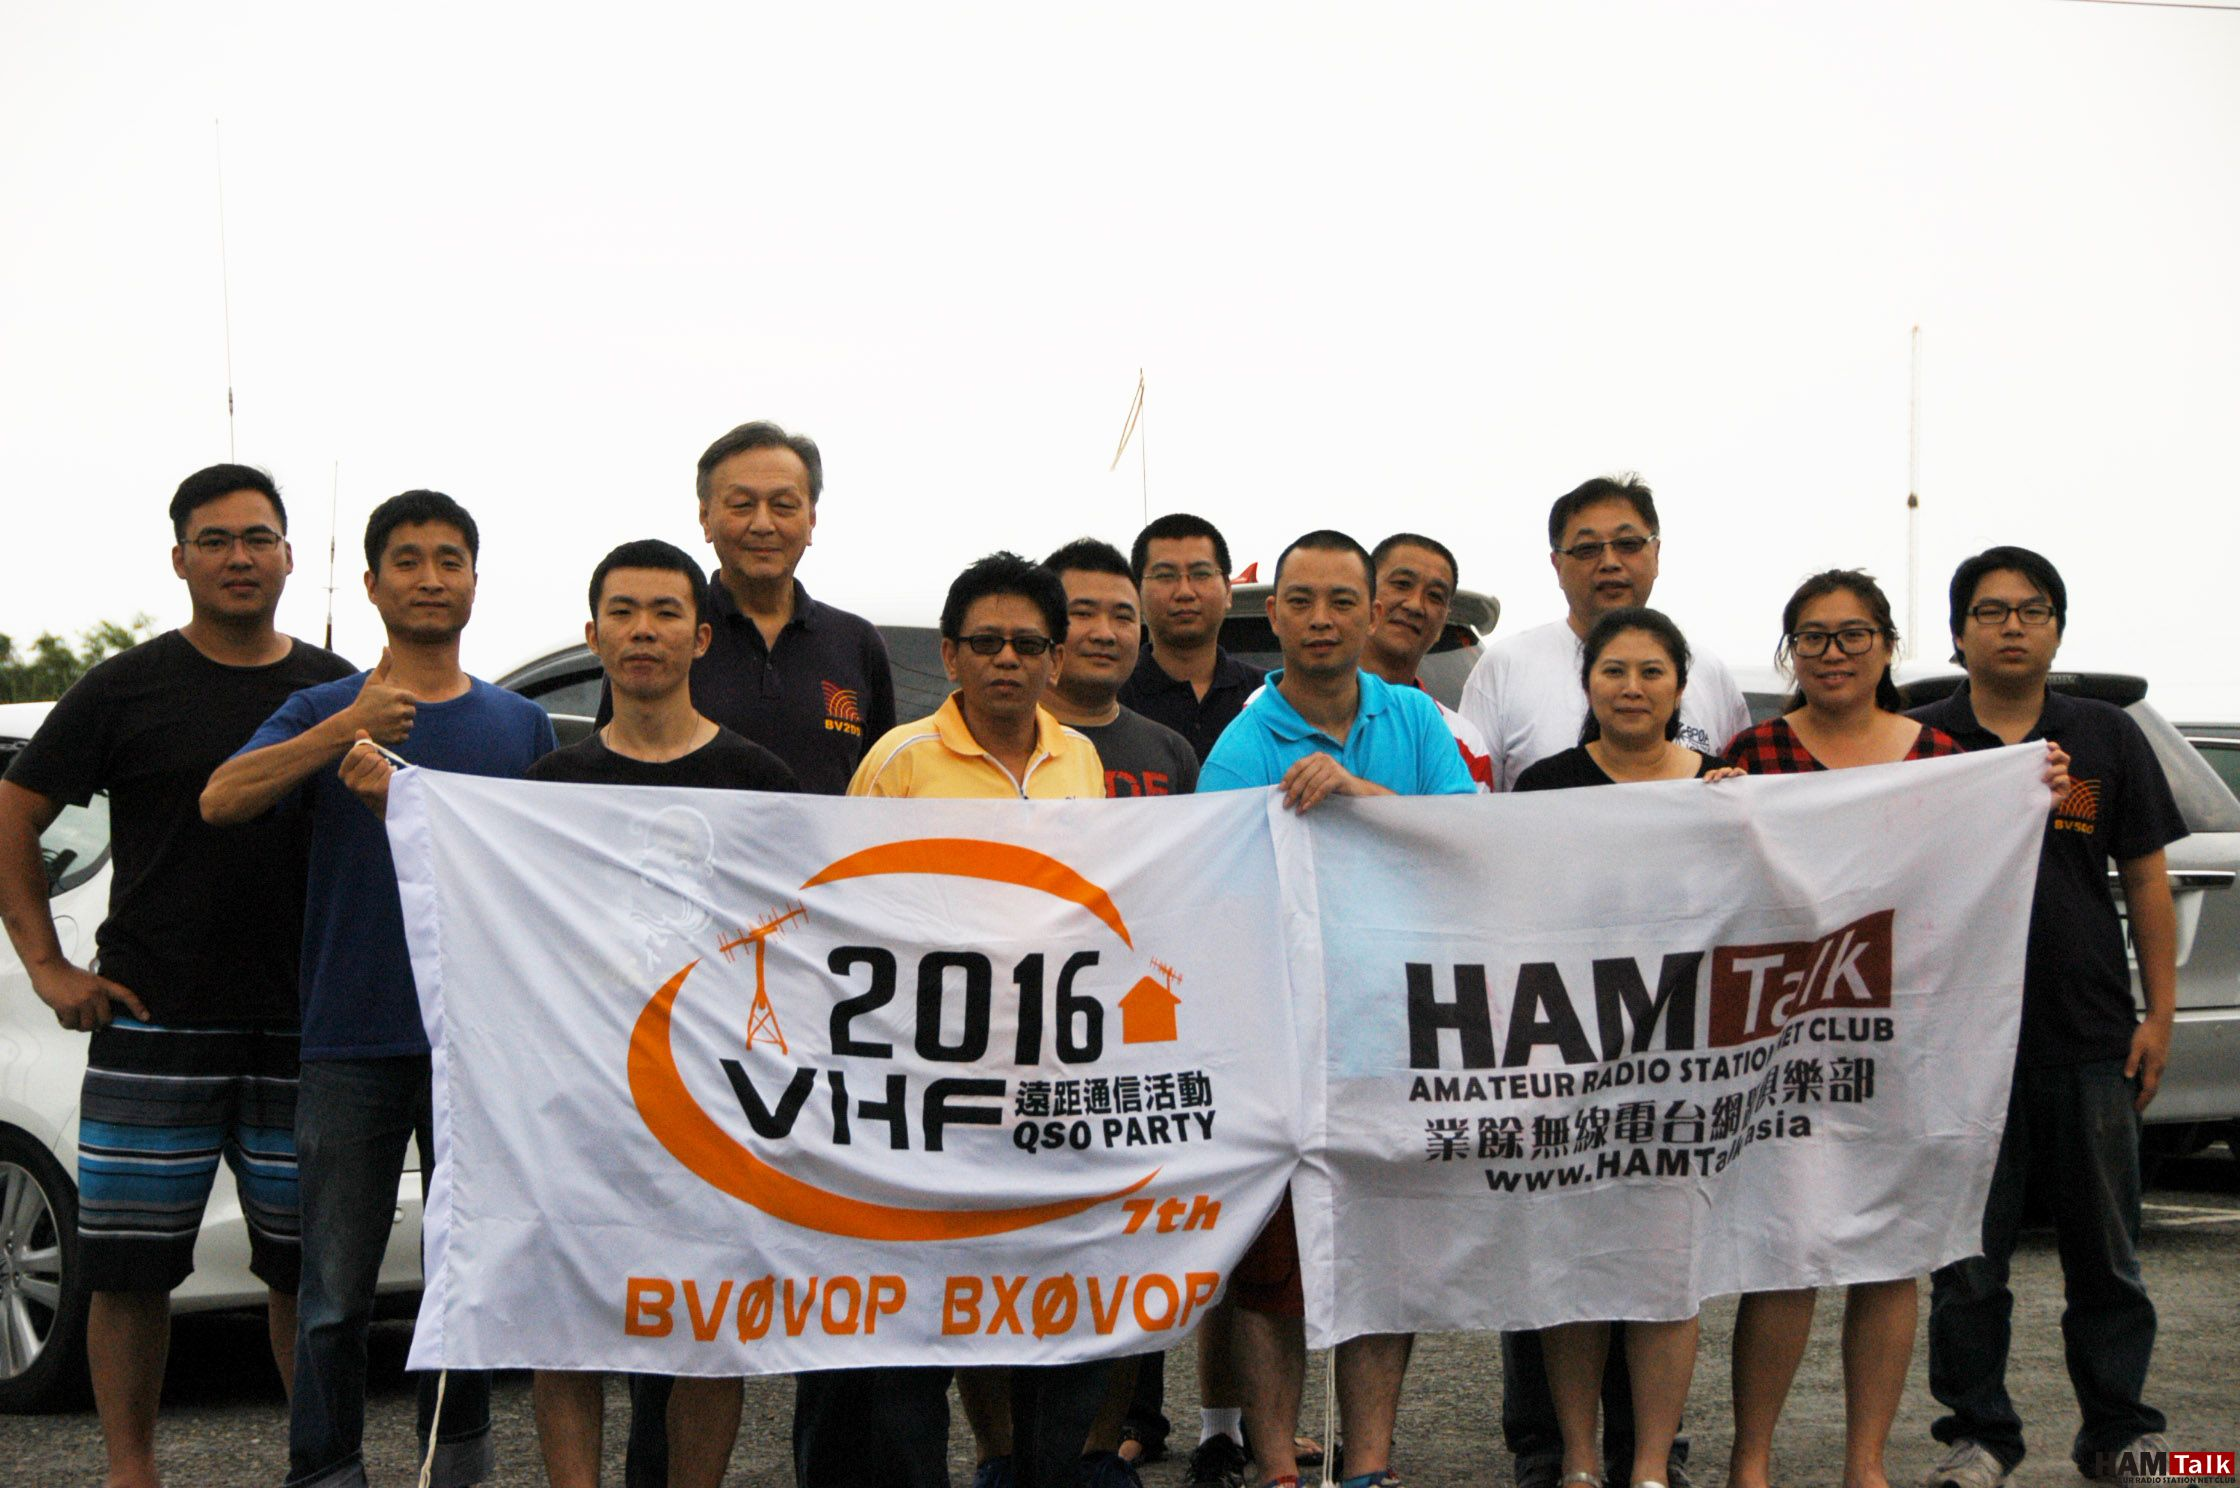 2016 VHF QSO PARTY 照片part1